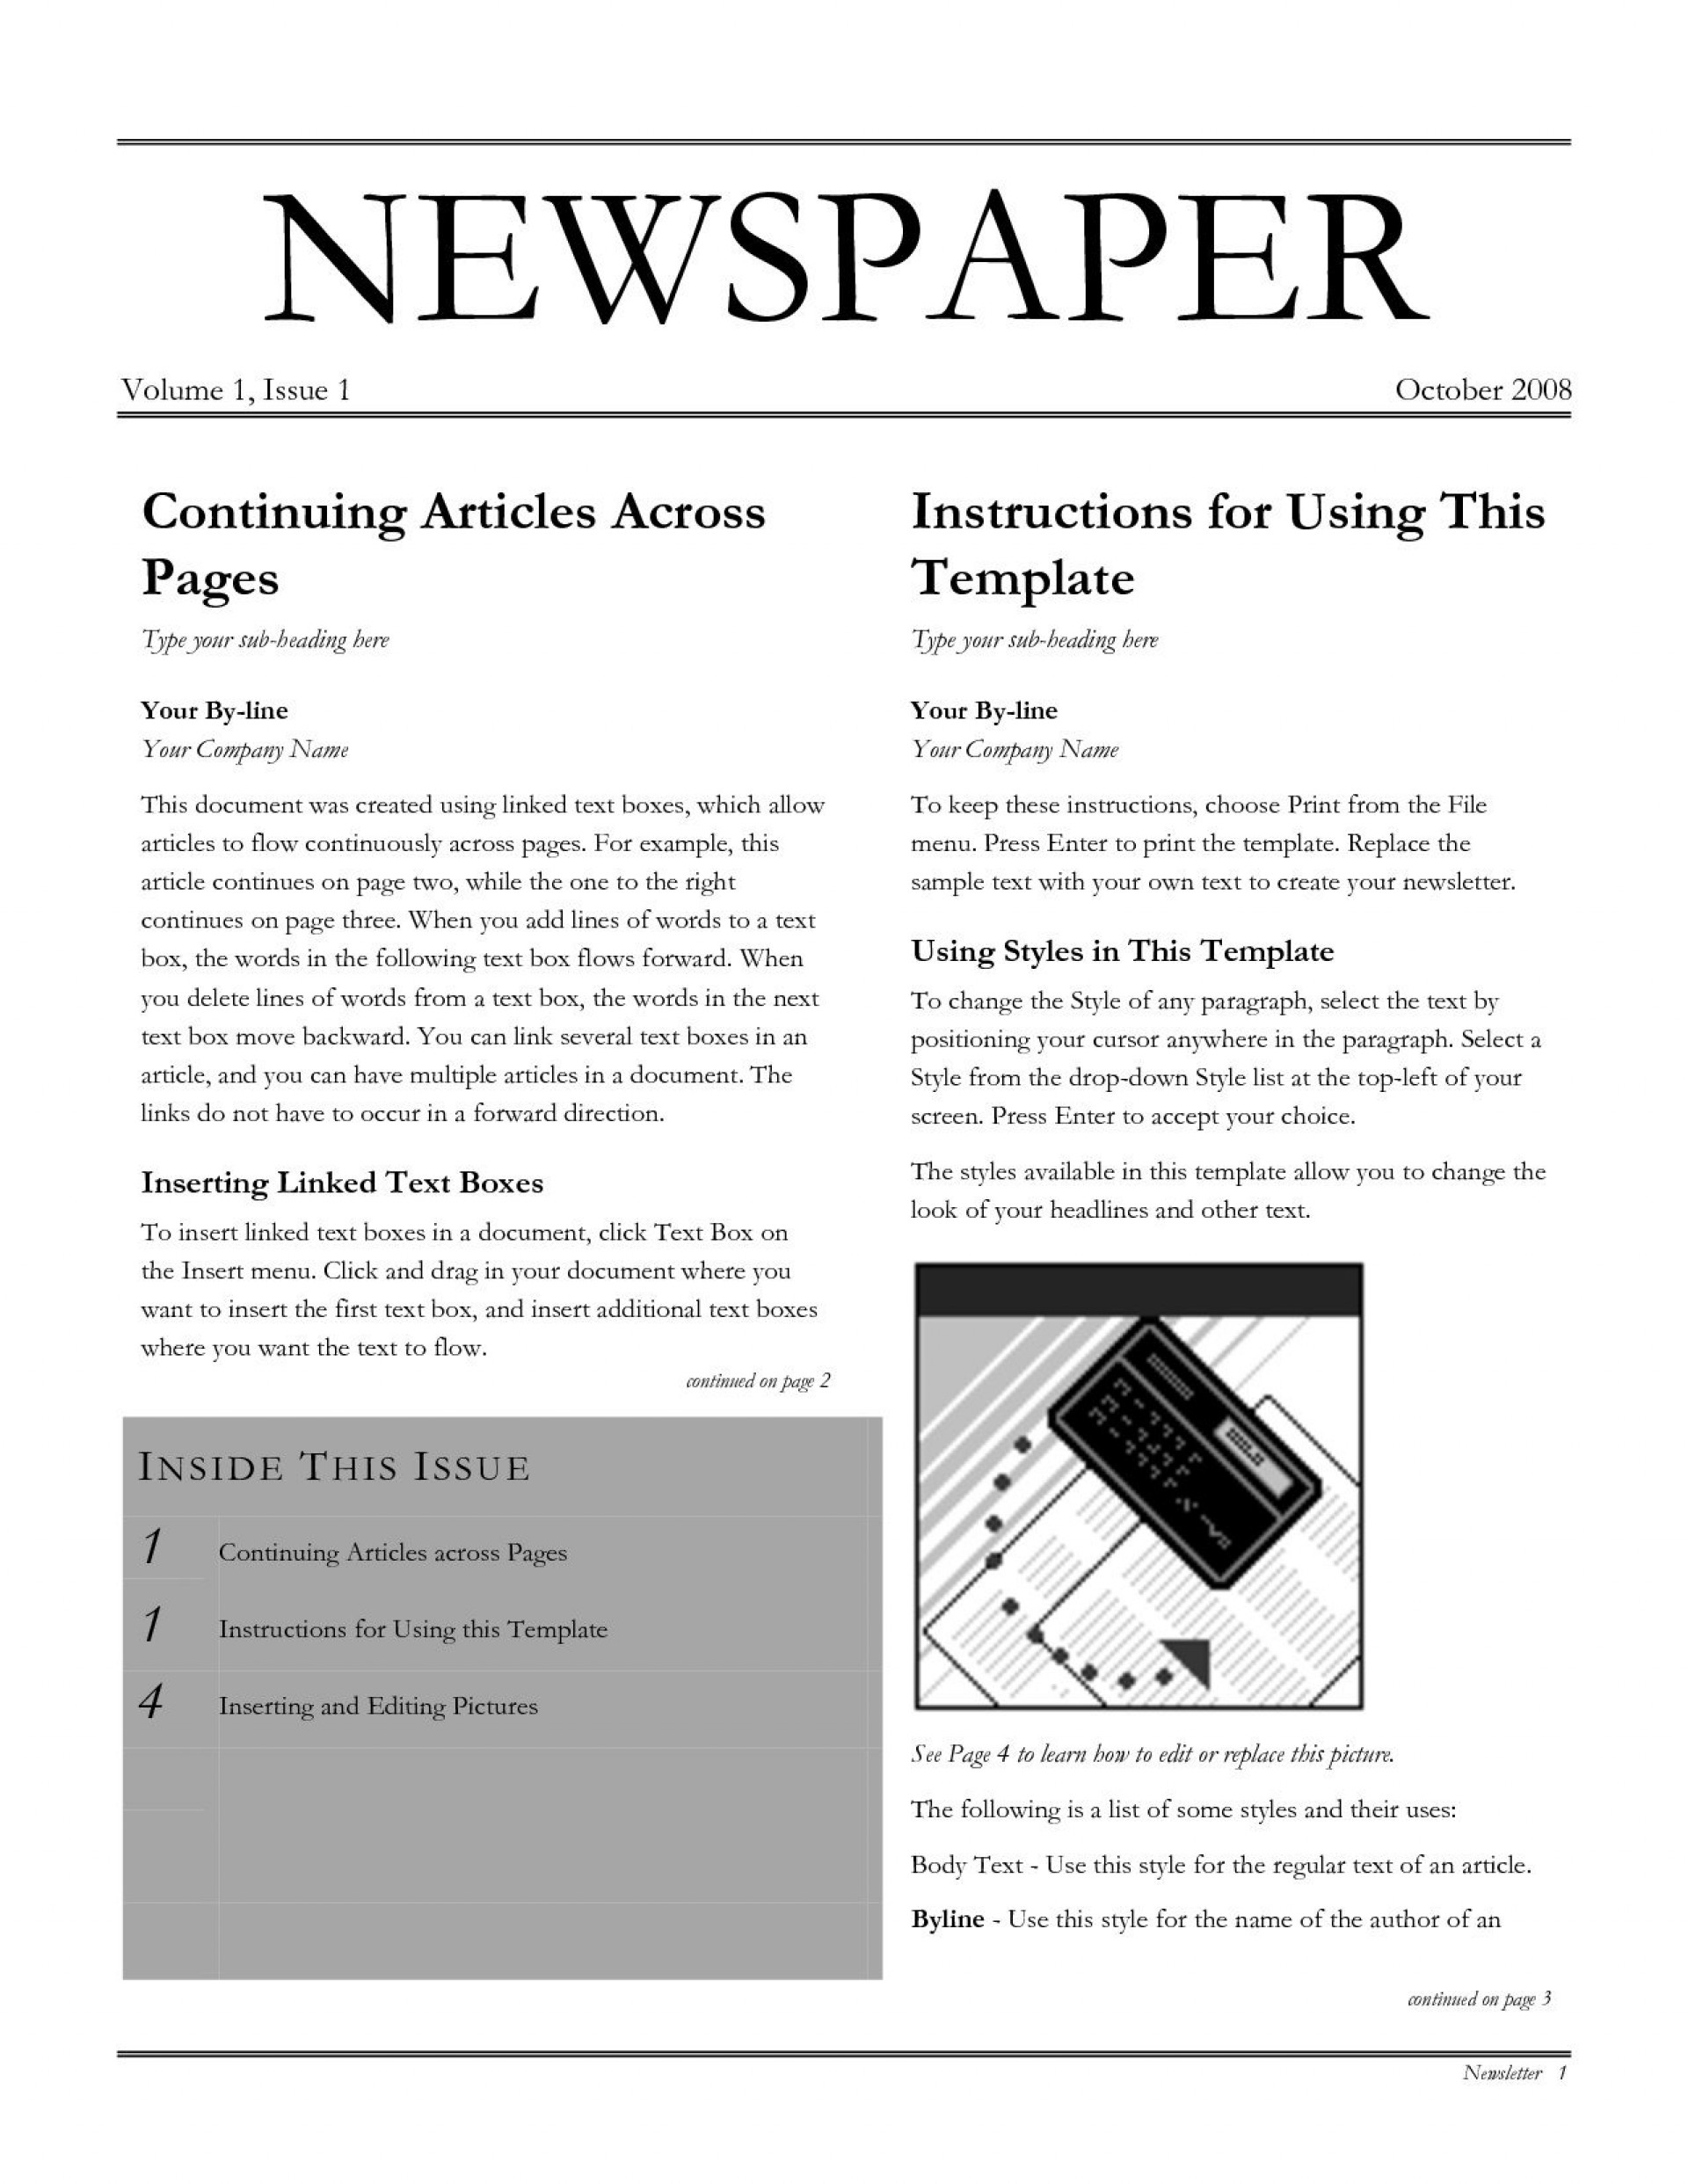 002 Frightening Newspaper Article Template Google Doc Image  Docs Format1920